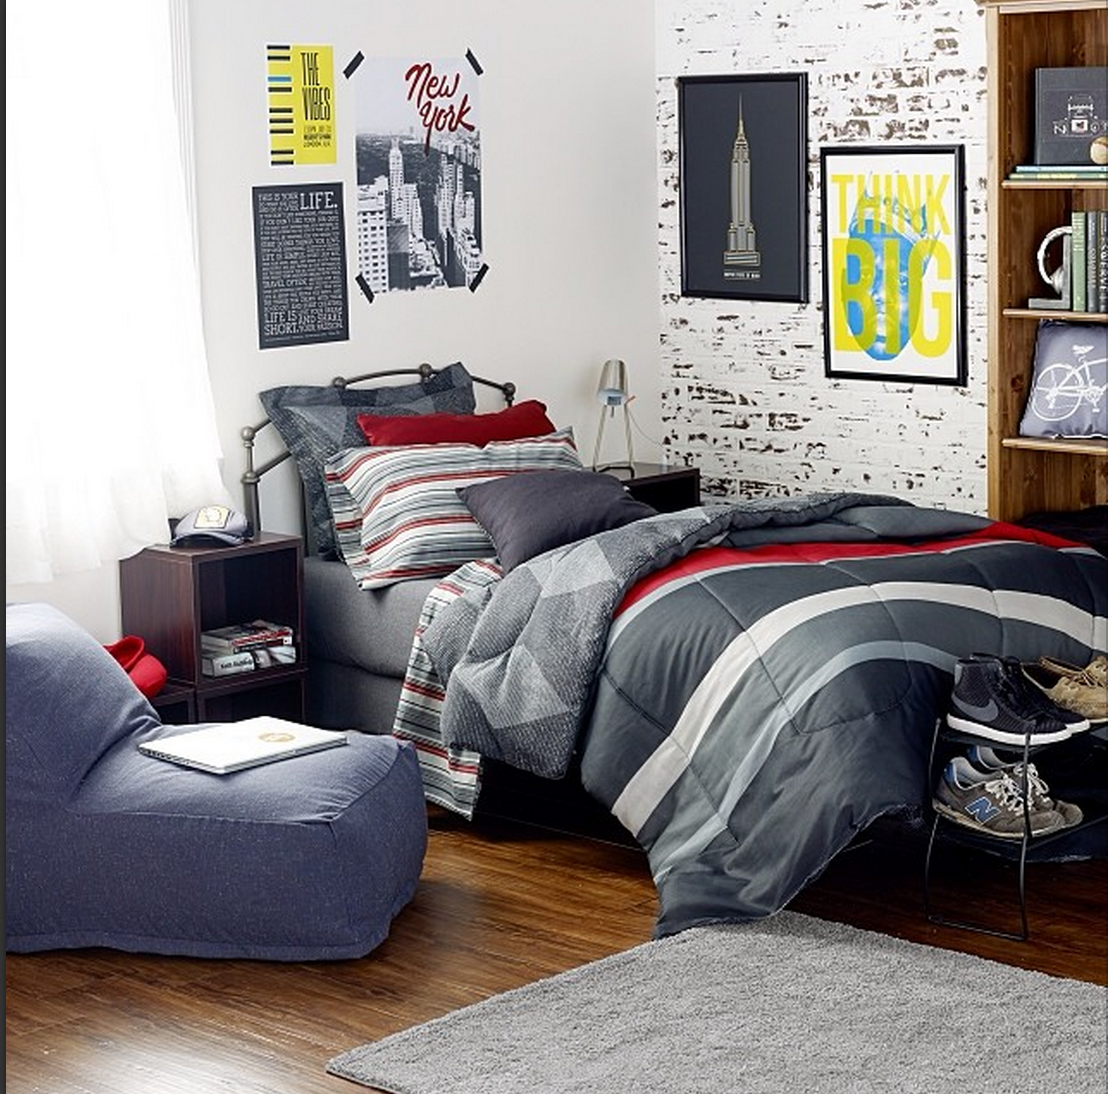 dorms dorm ideas black diamond comforter fake brick walls guy dorm guy